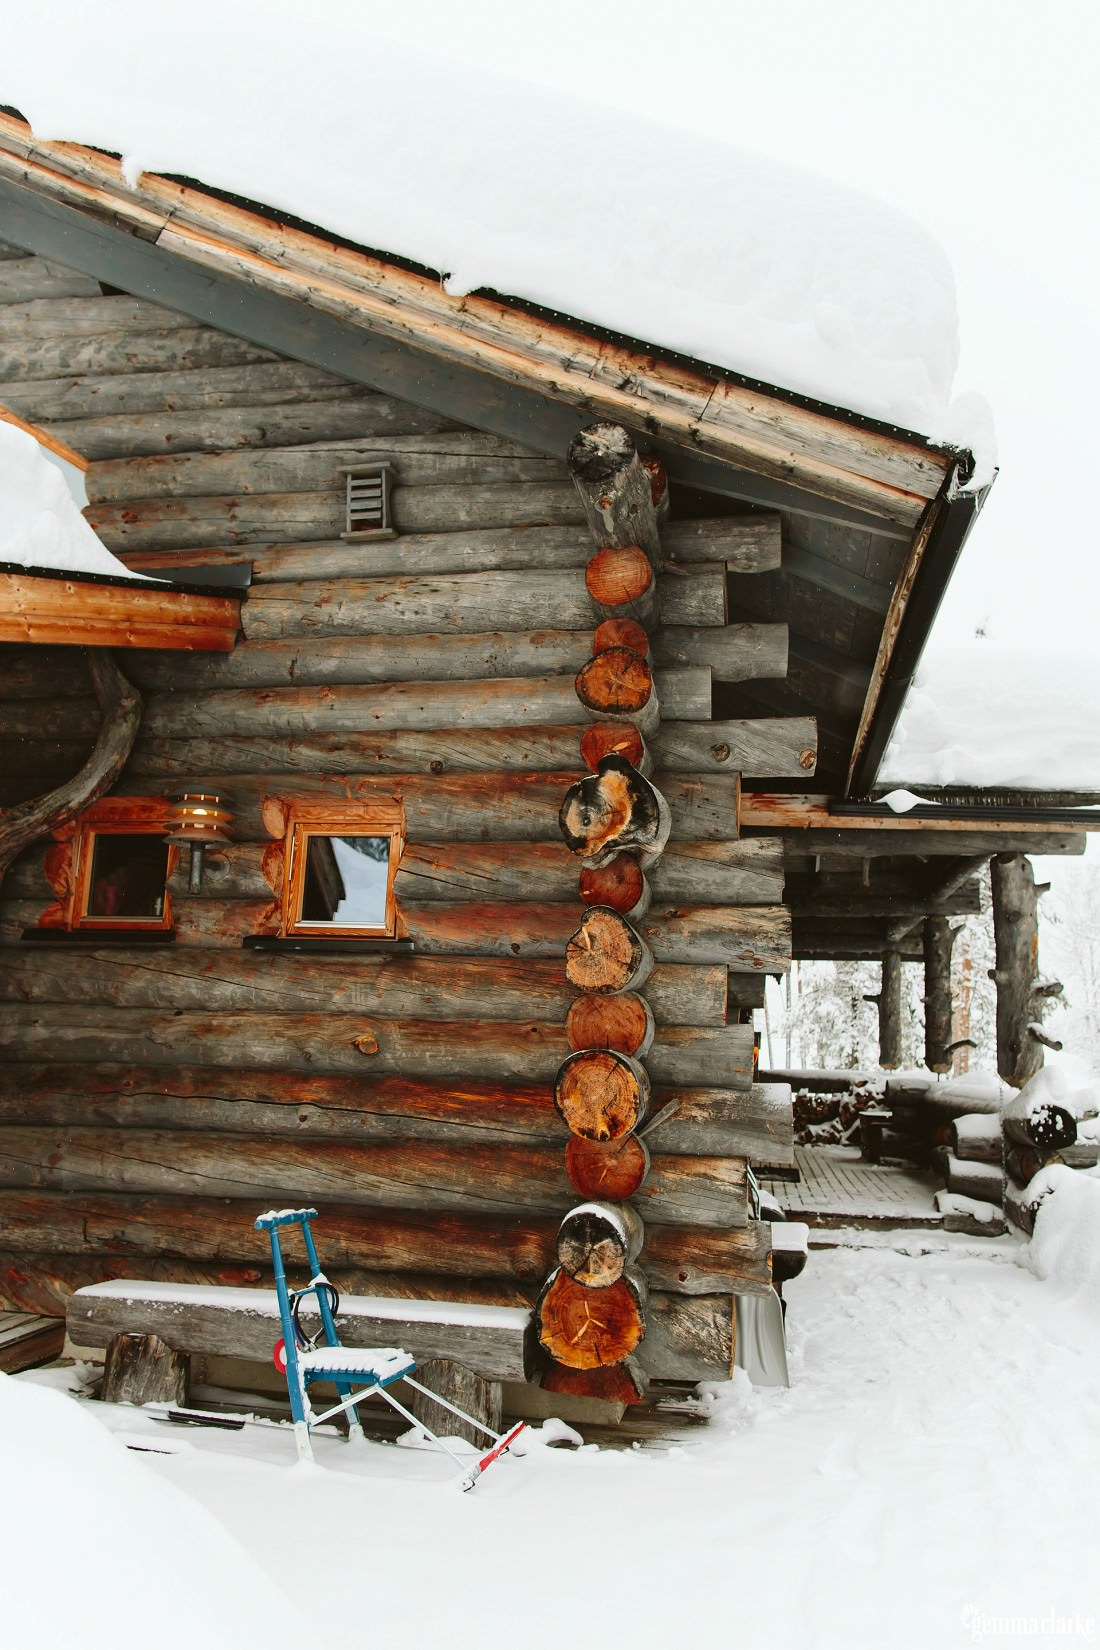 Very thick snow on the roof of a wooden cabin